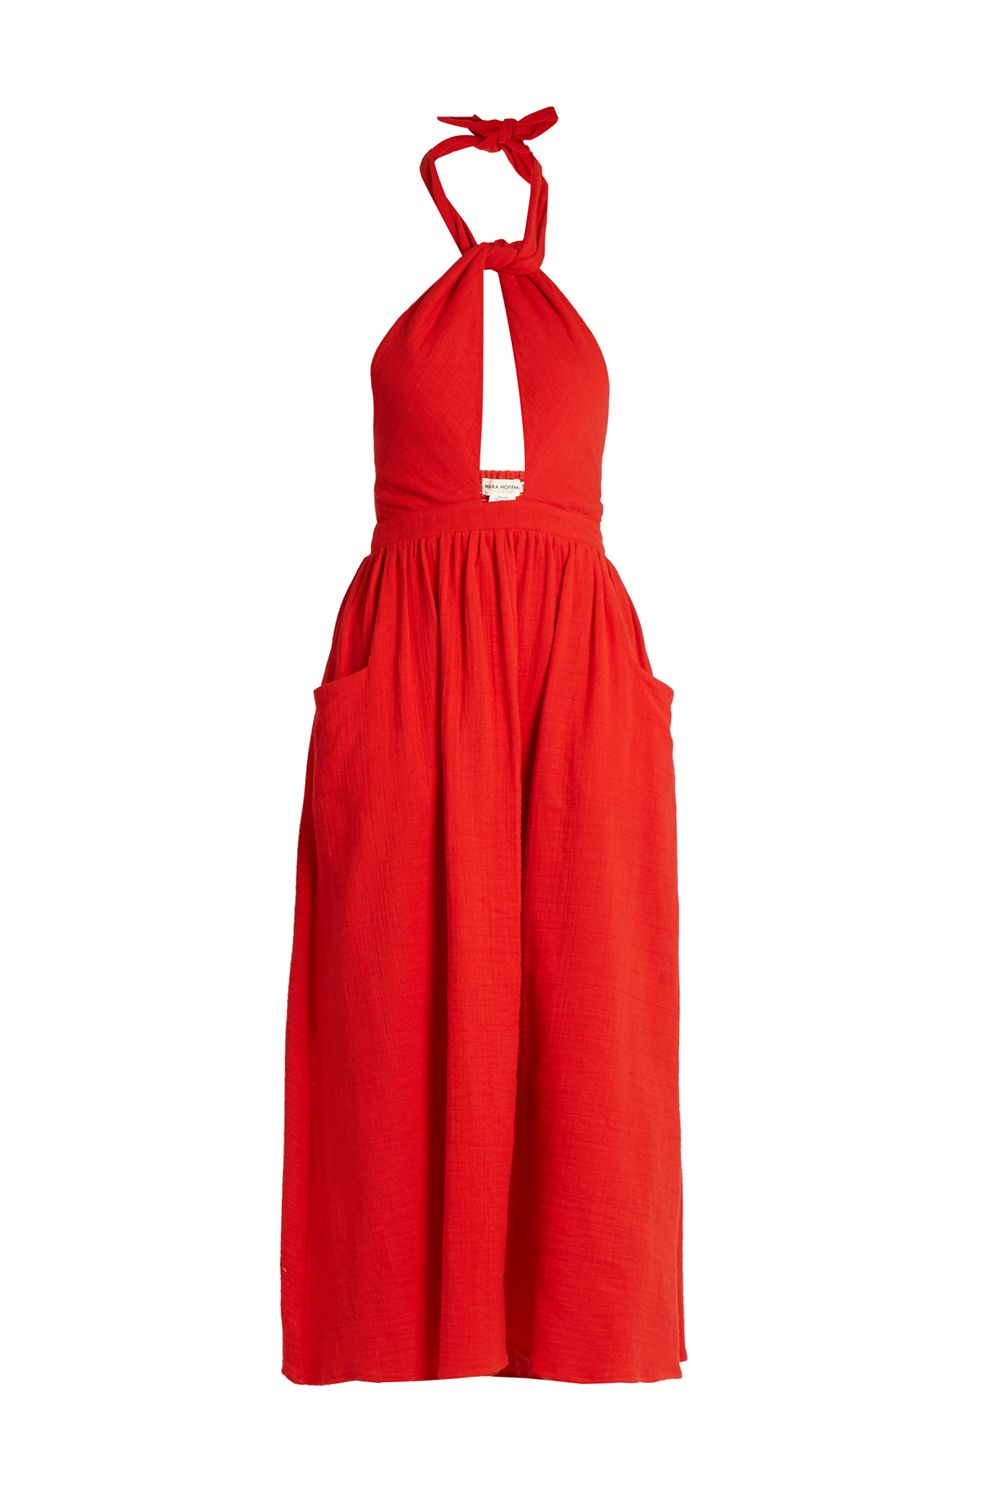 e4f2e72d1f58 10 Head-Turning Summer Dresses for Hosting Your Next Party | My ...